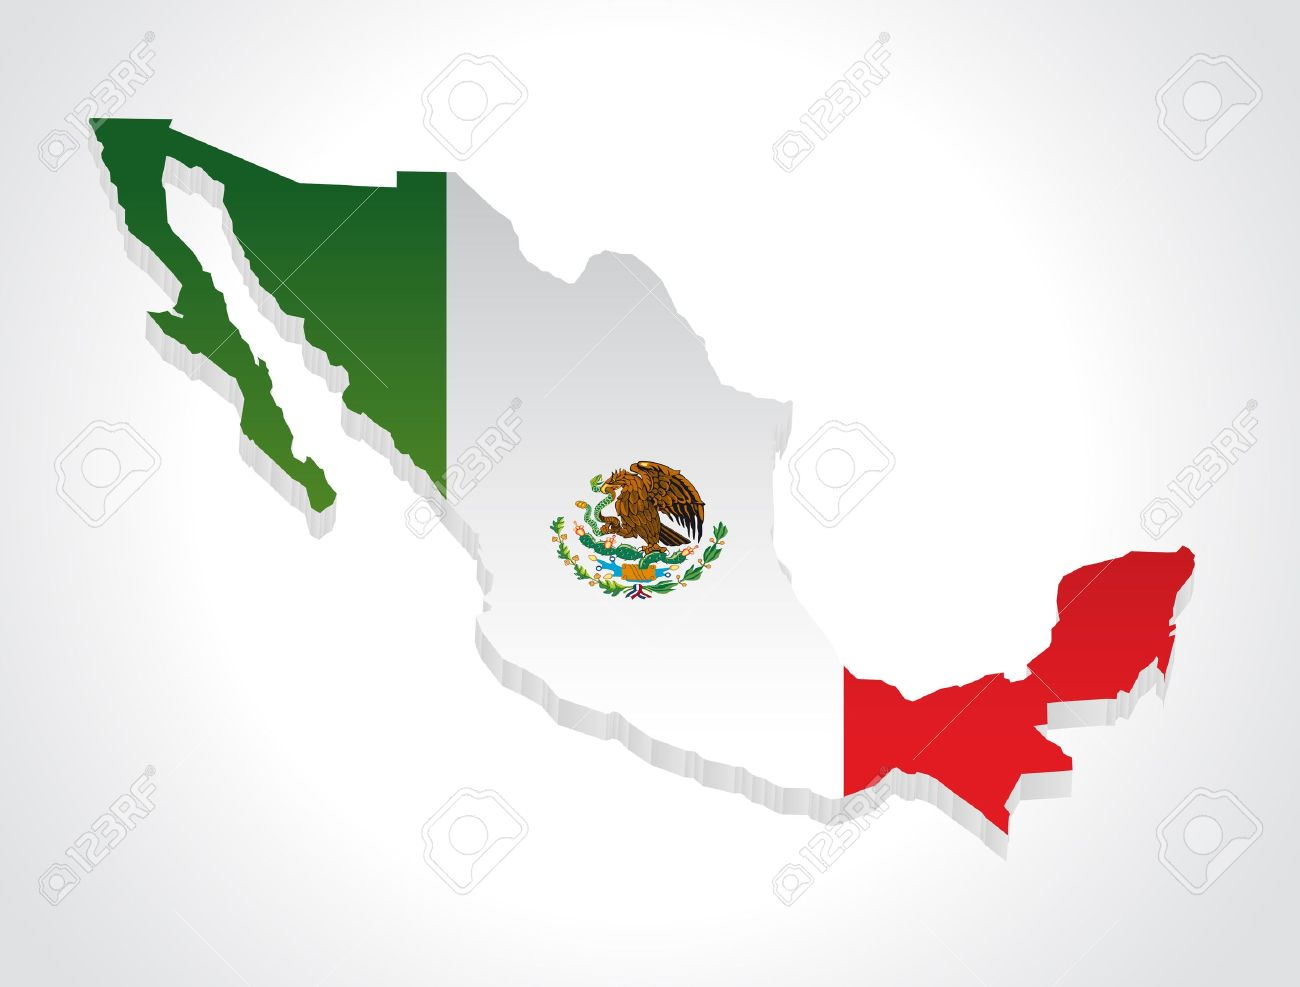 map of mexico in 3d - 21652112